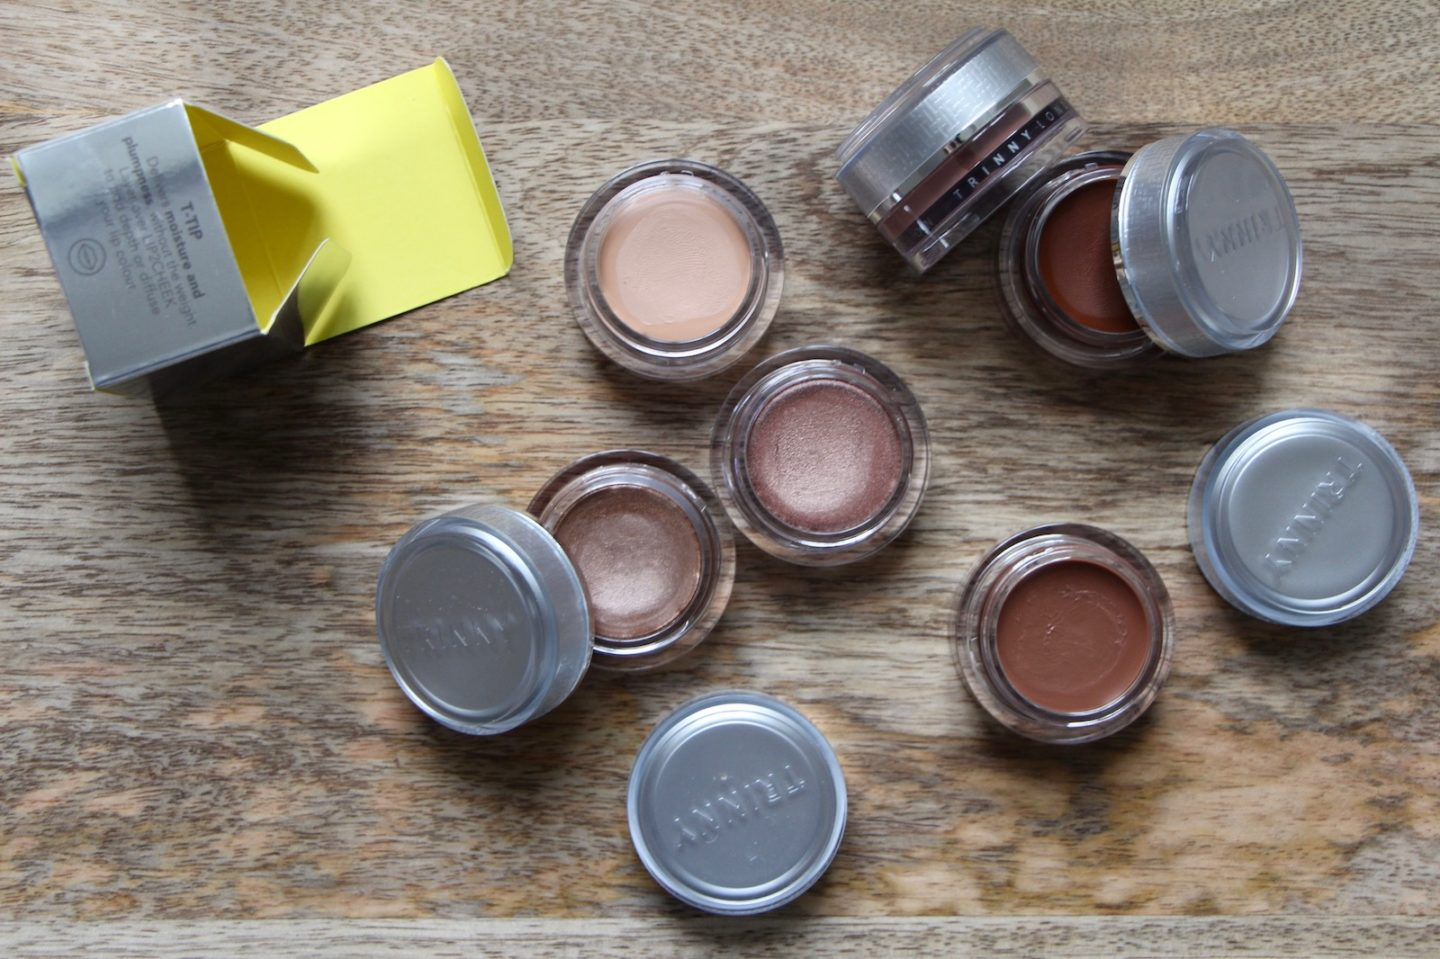 trinny london makeup review